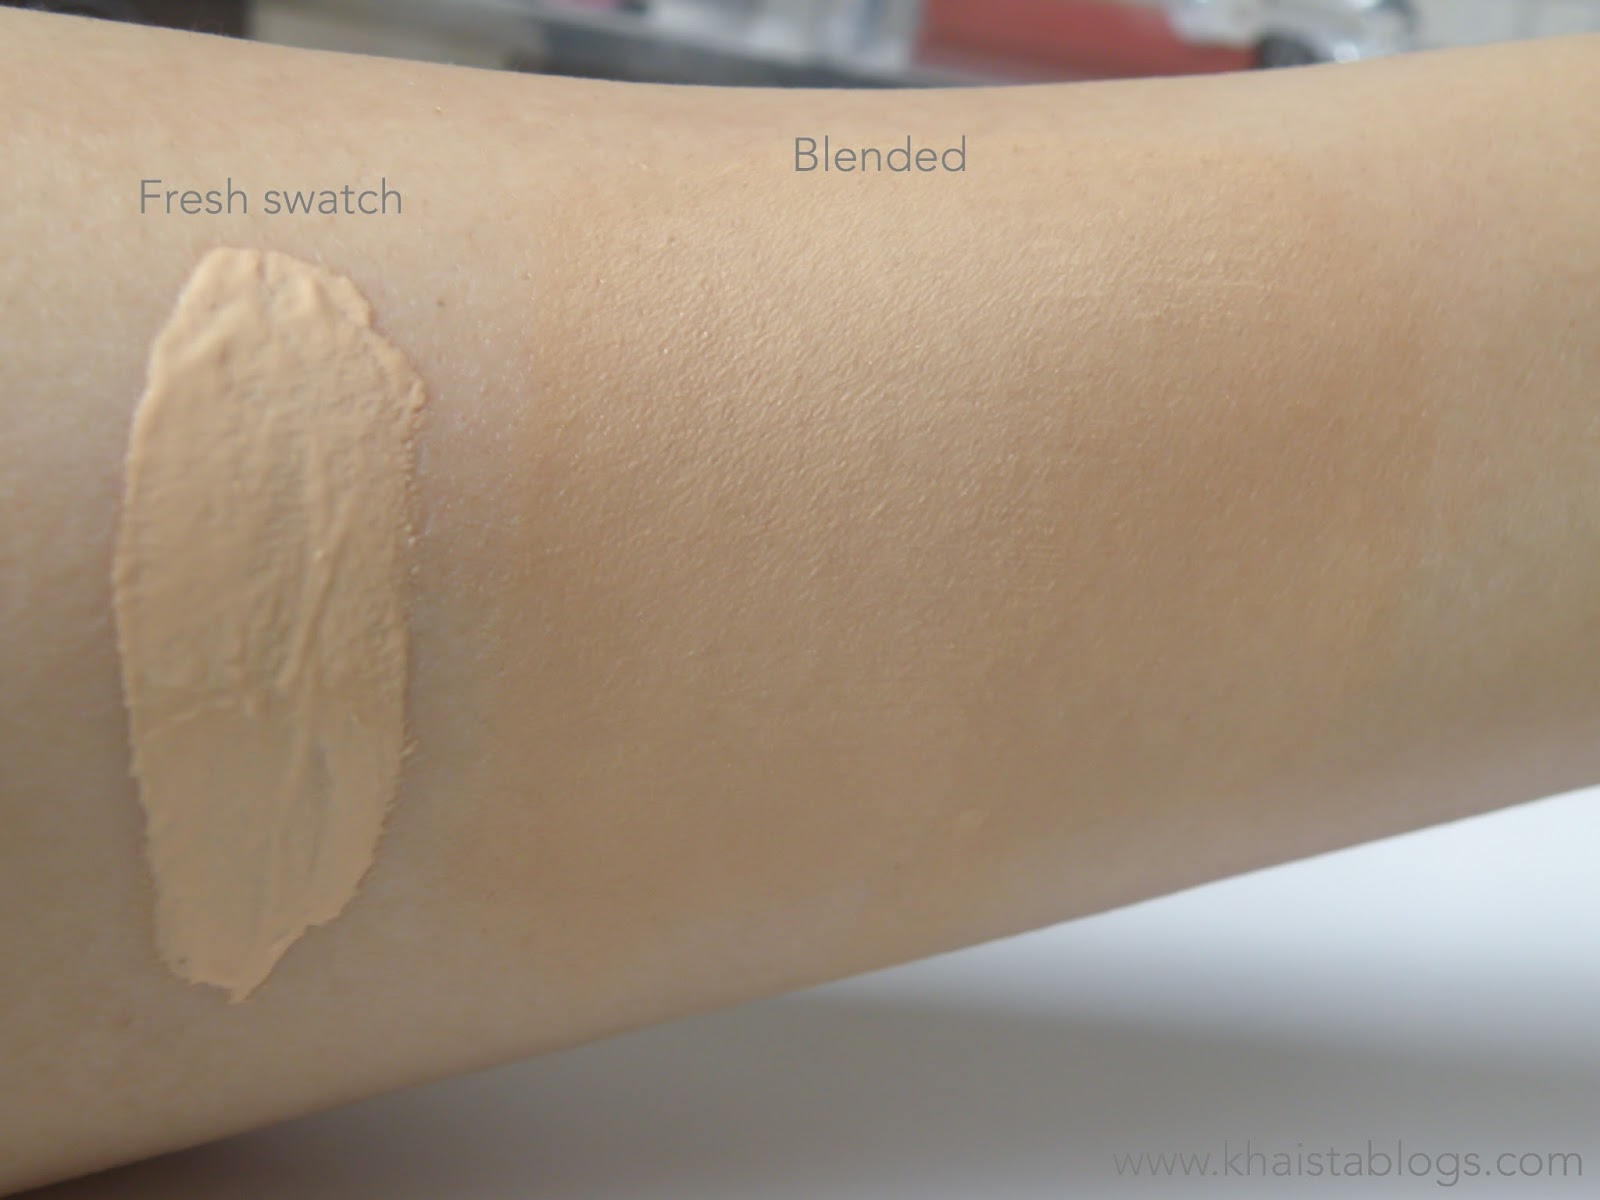 Stila-stay-all-day-10-in-1-hd-beauty-balm-swatch-review